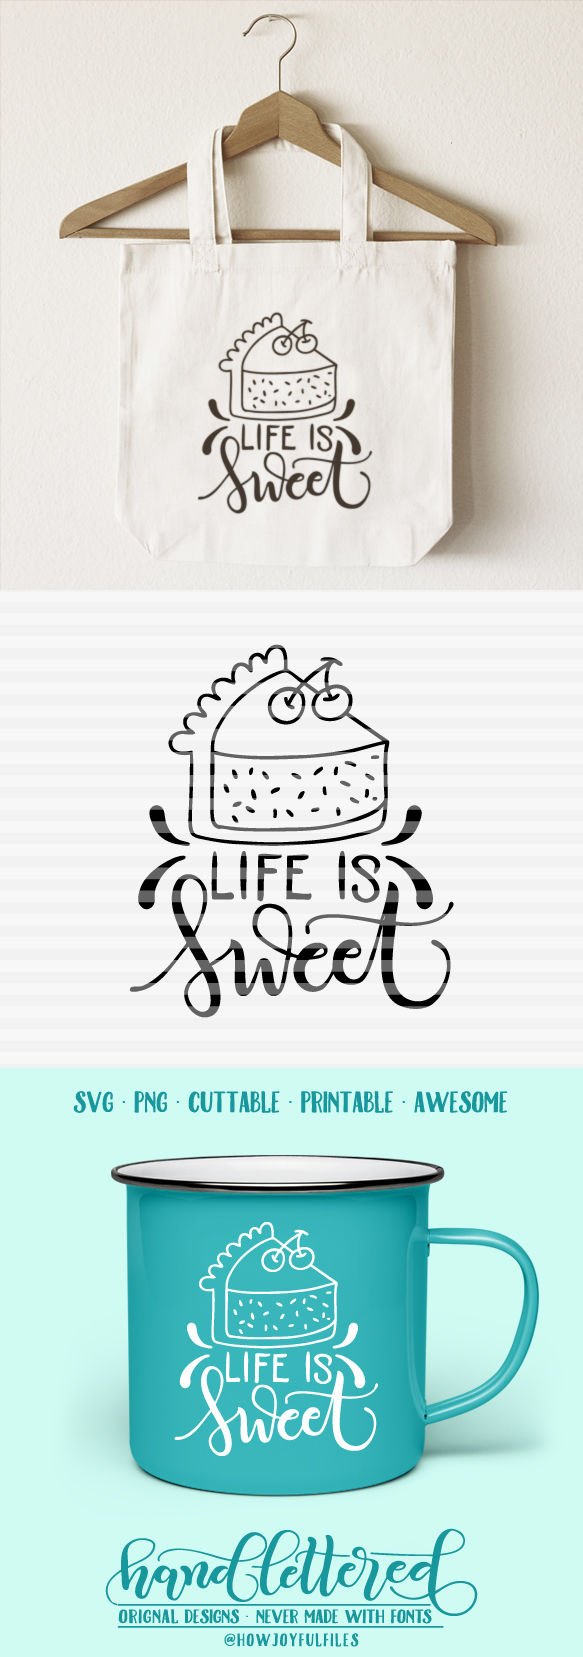 Life Is Sweet Svg Pdf Dxf Hand Drawn Lettered Cut File By Howjoyful Files Thehungryjpeg Com